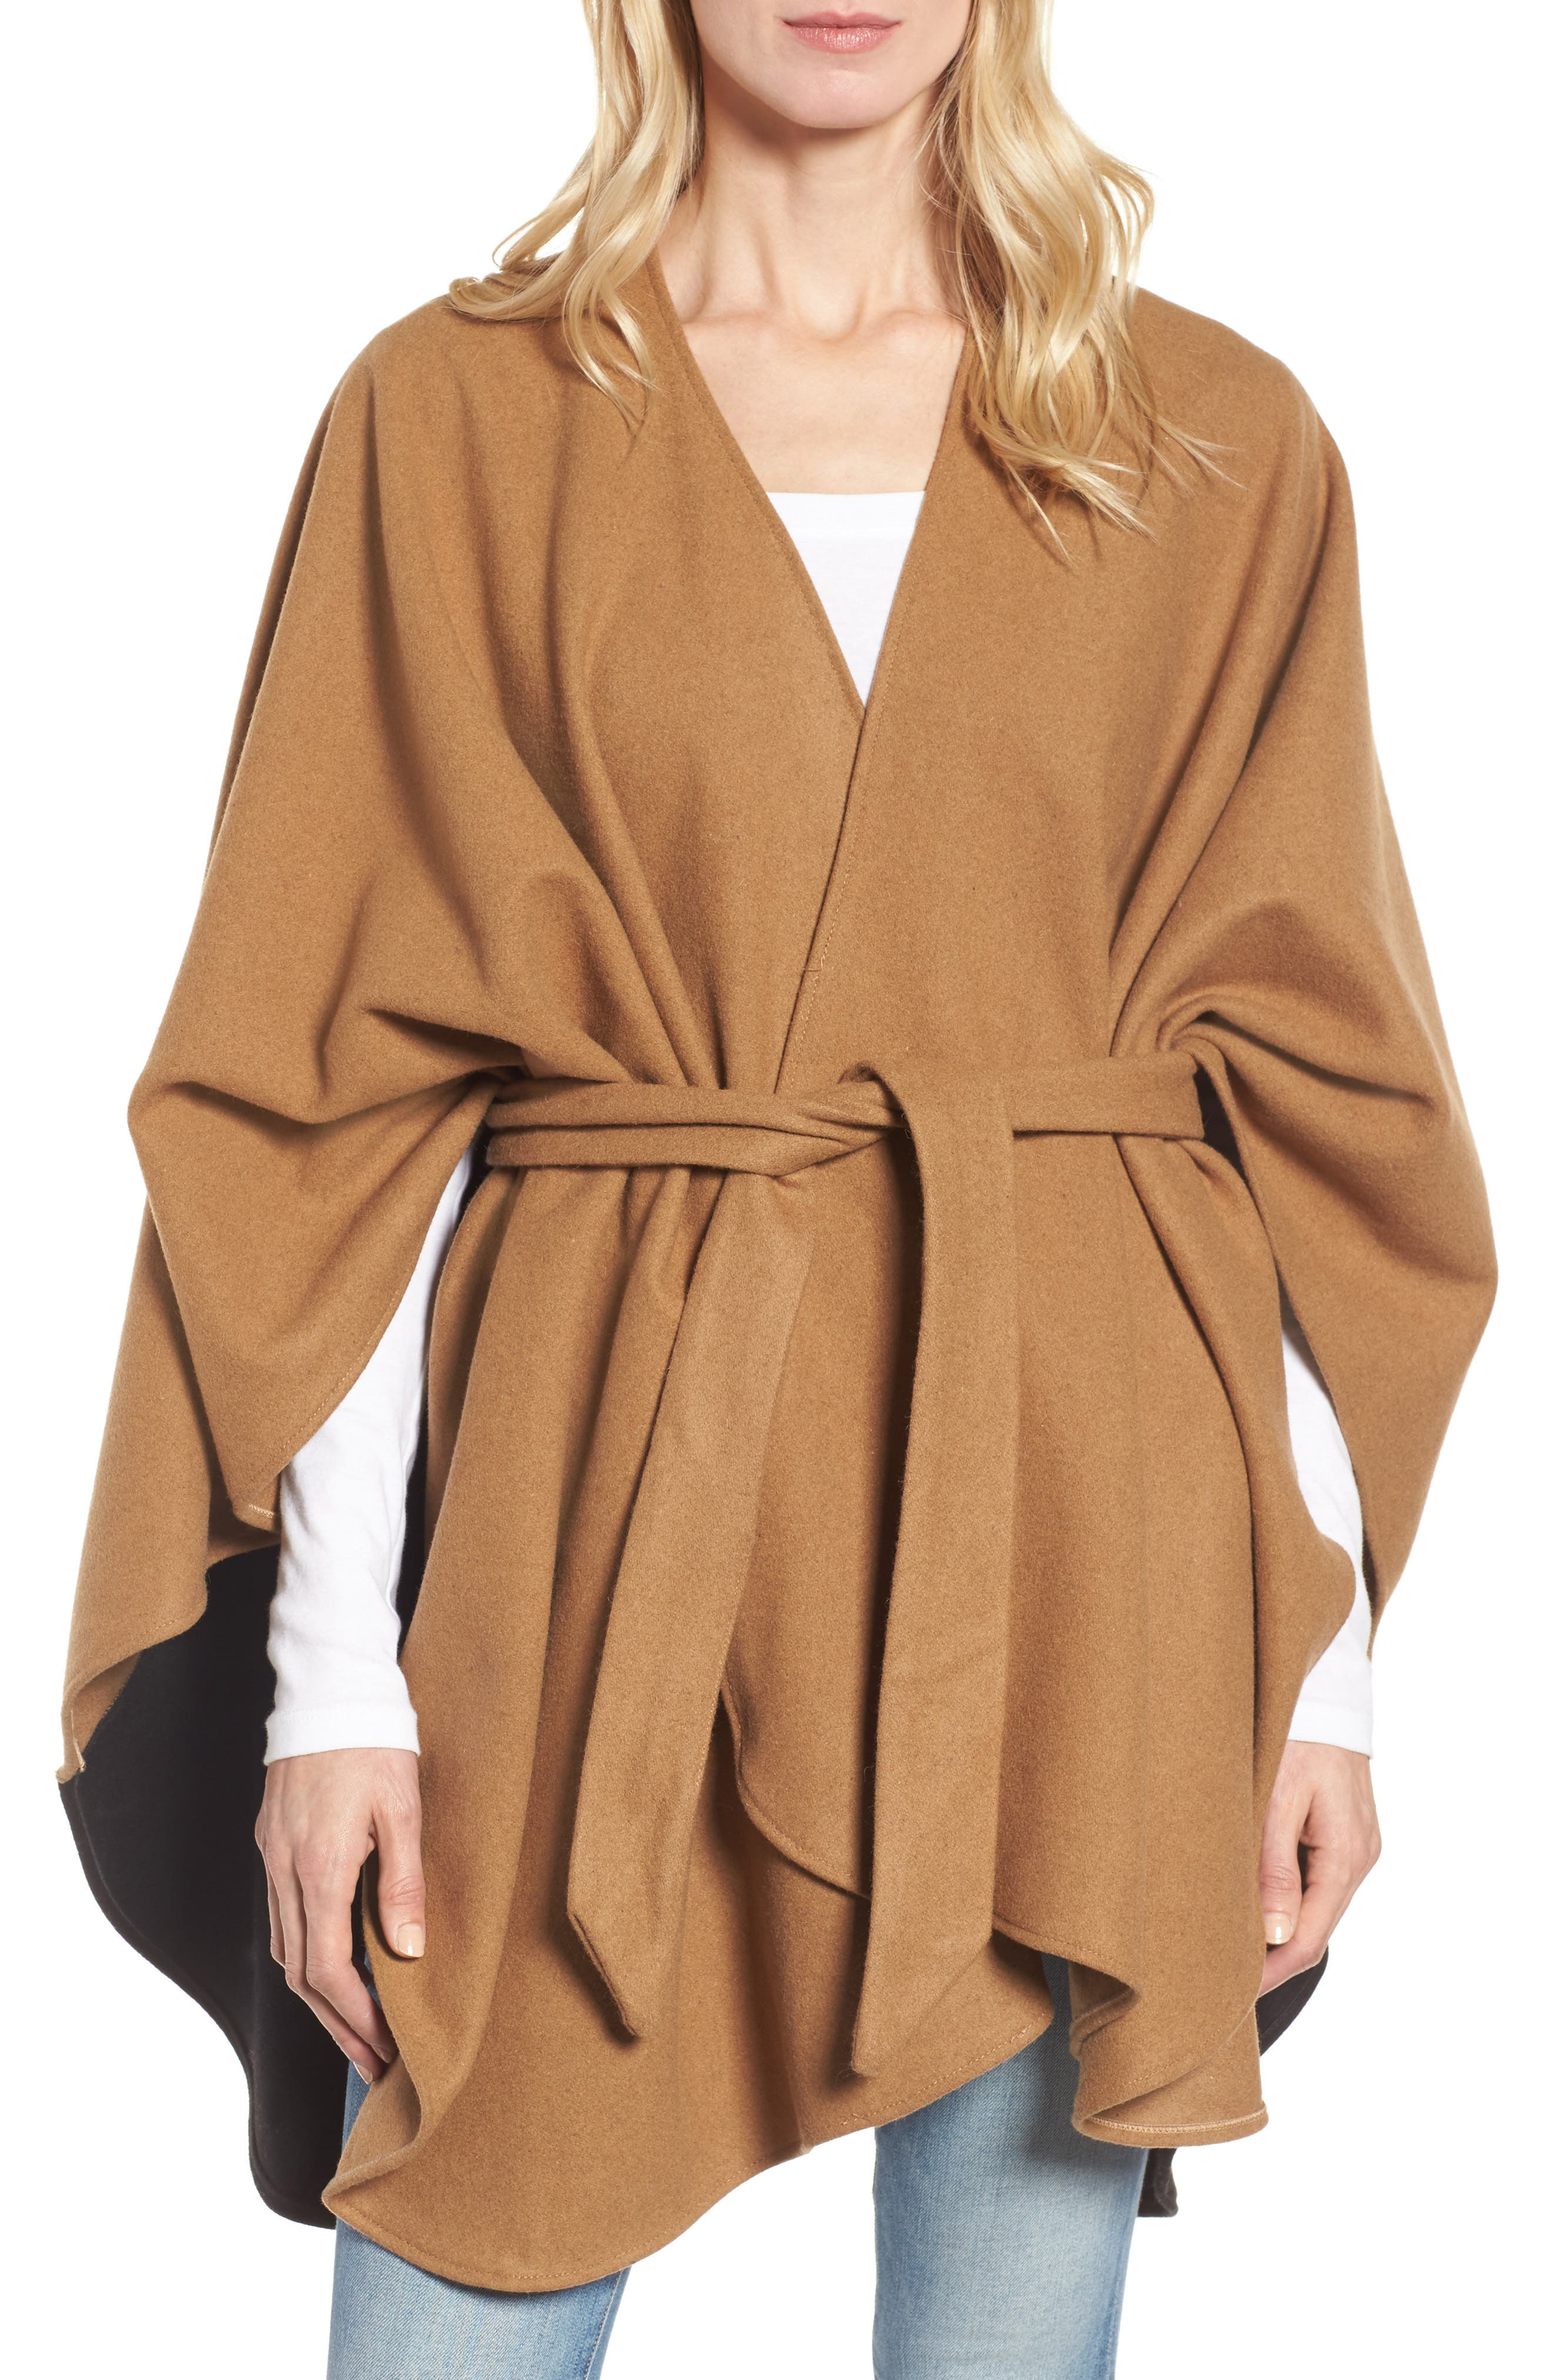 Donni Charm Duo Wonder Wool Cape